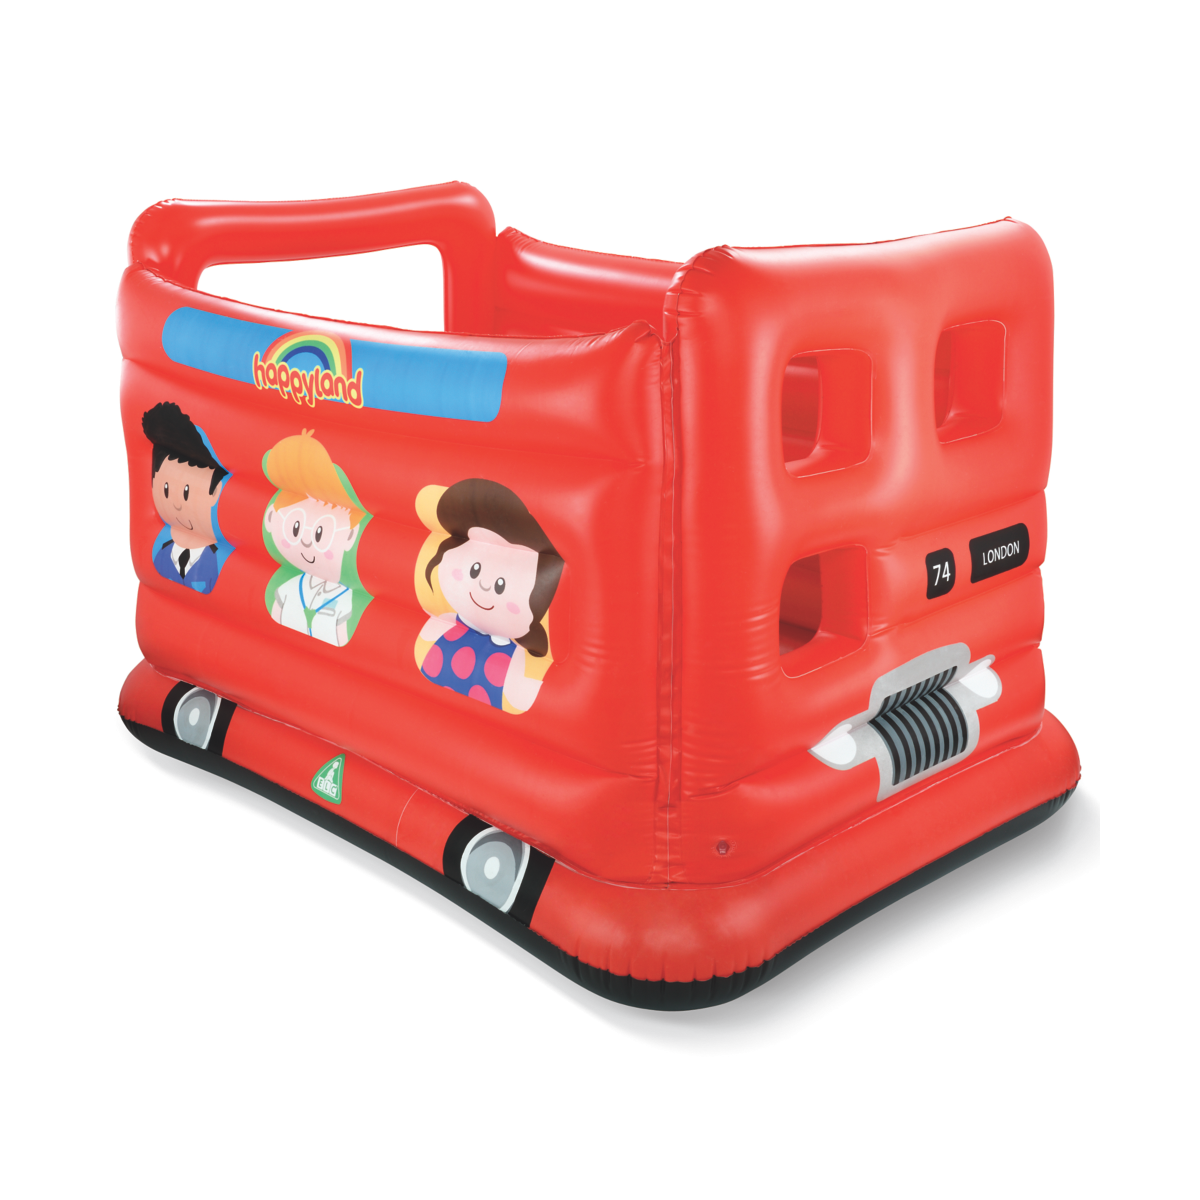 Happyland Bouncy Bus from Early Learning Center